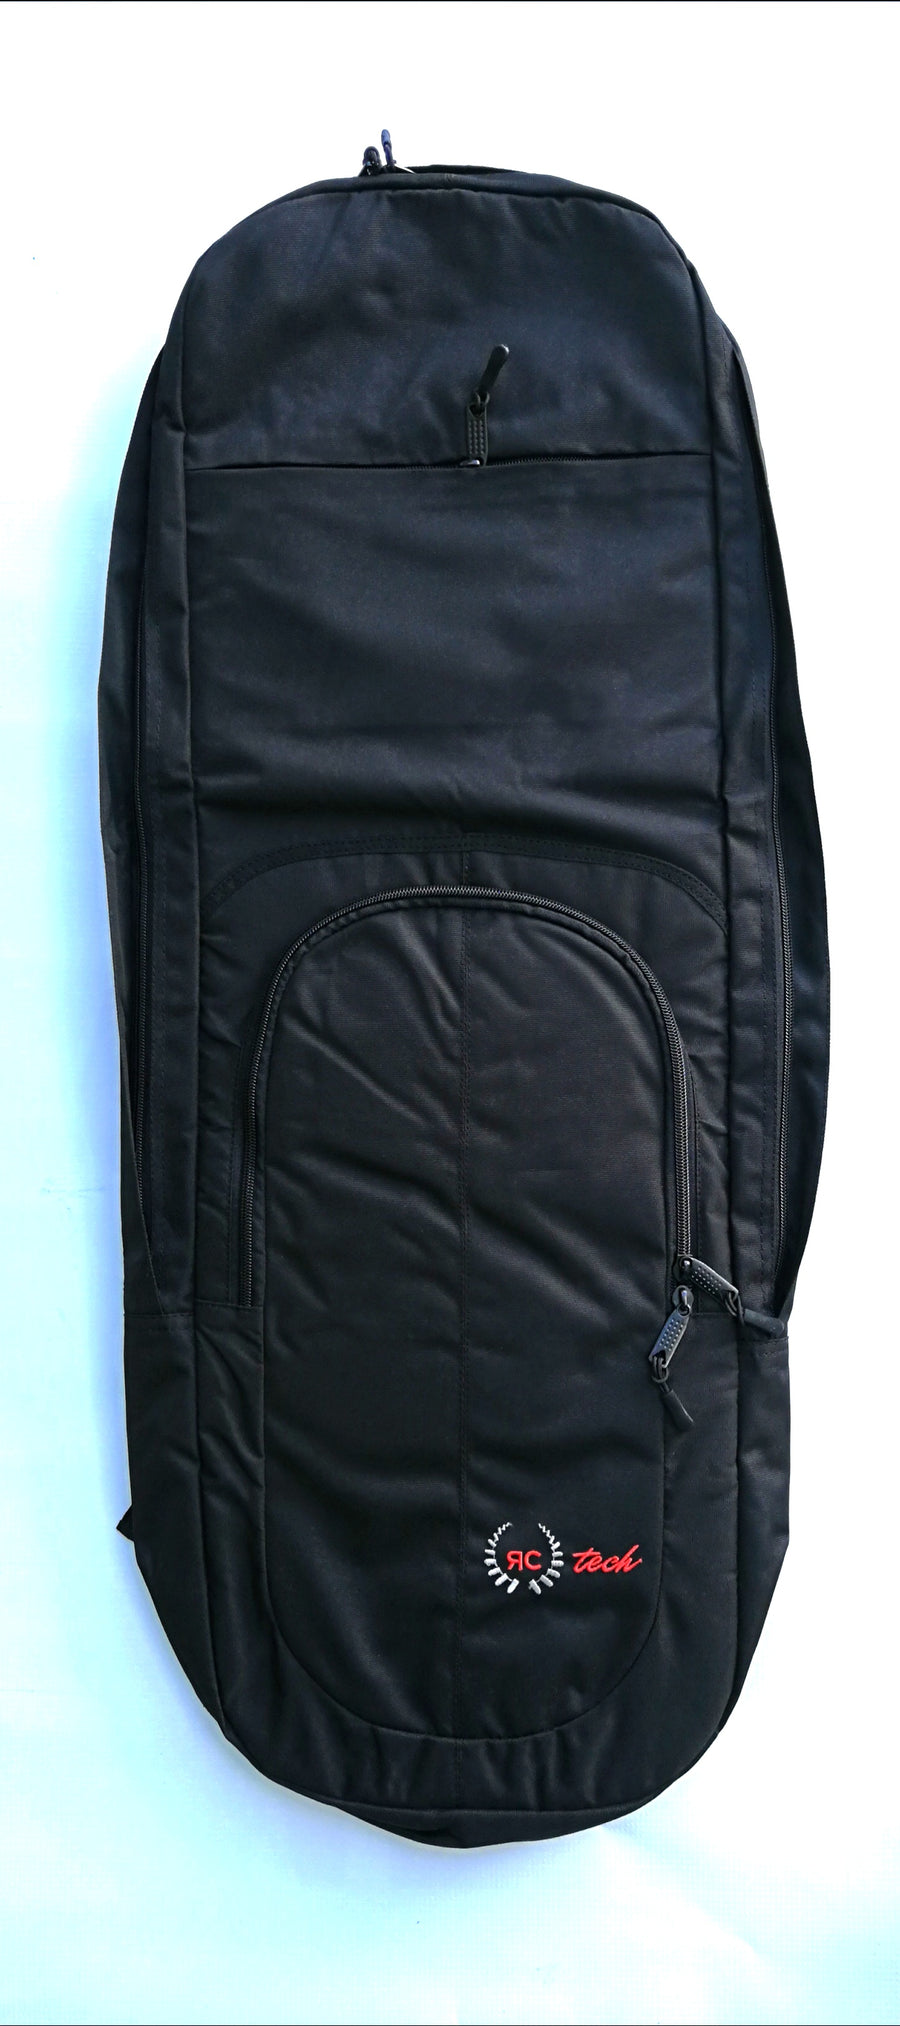 Special PCC Back Pack RC-Tech for rifles